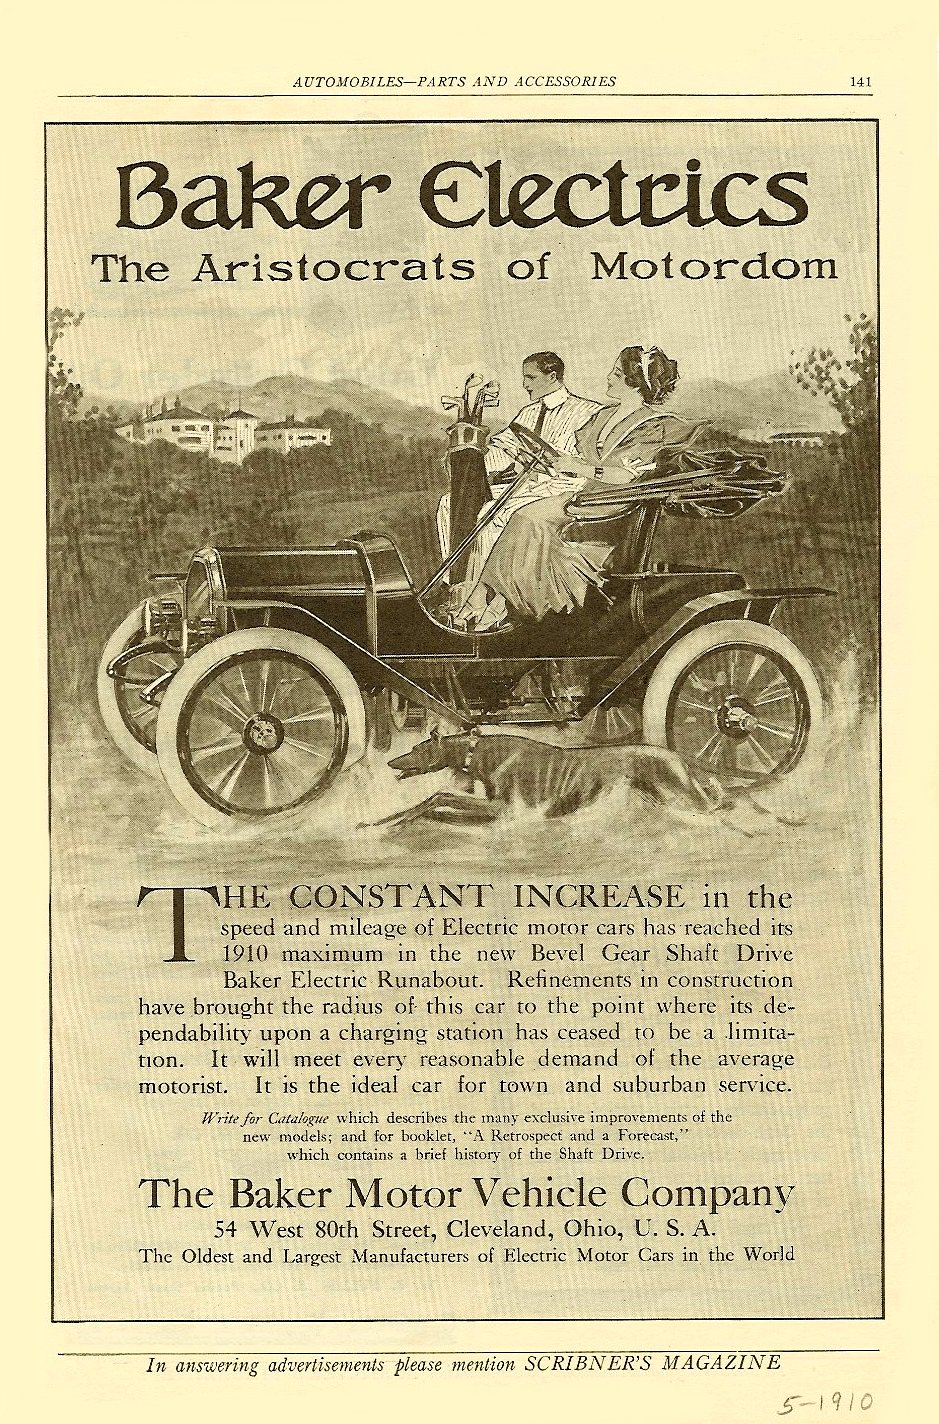 "1910 5 BAKER Baker Electrics ""The Aristocrats of Motordom"" Scribner's Magazine Automobiles – Parts and Accessories May 1910 6″x9.5″ page 141"